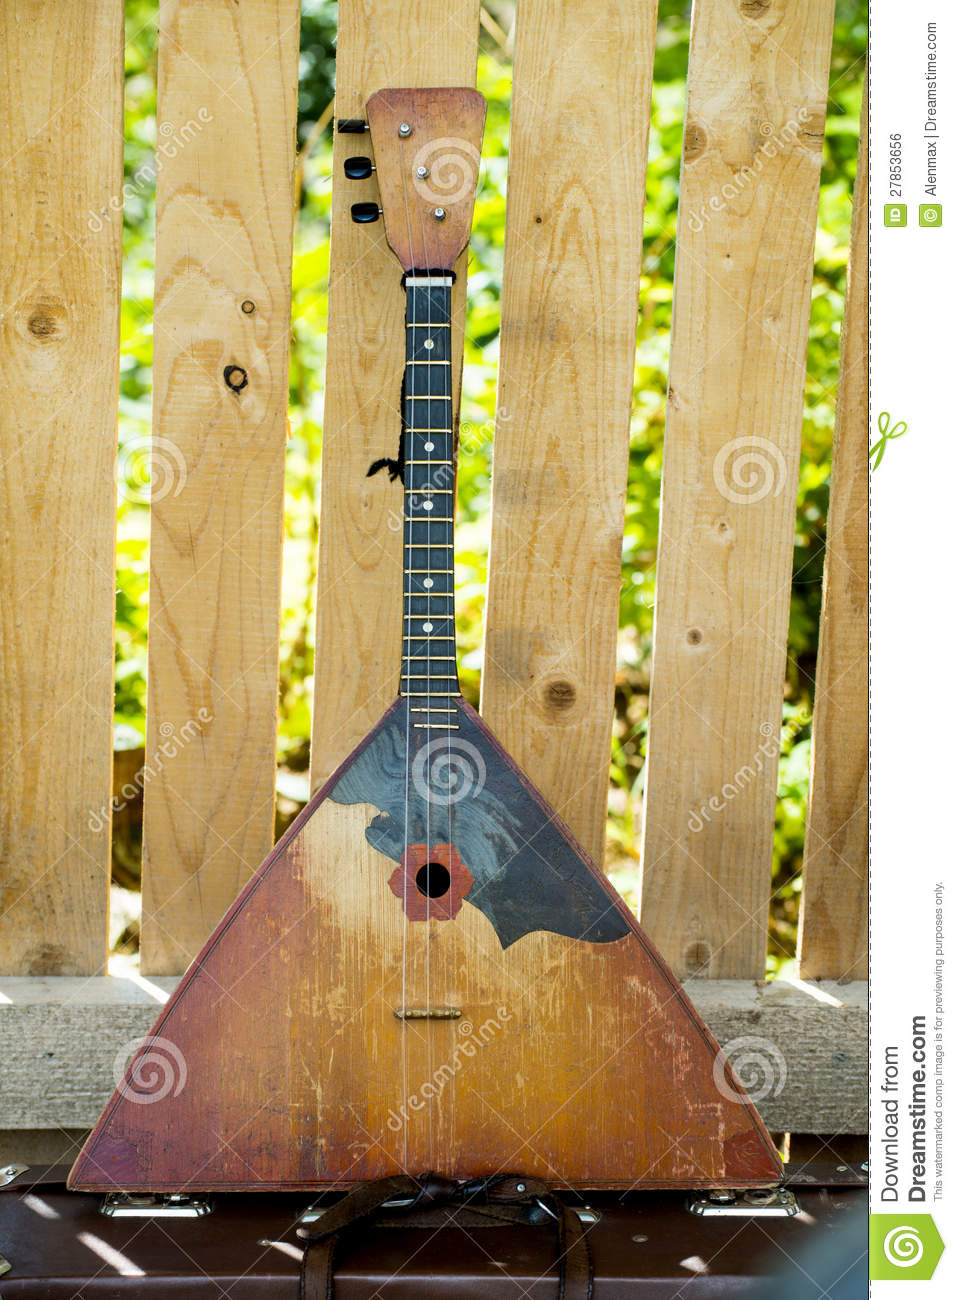 5x5FT Vinyl Photography Backdrop,Russian Balalaika Folkloric Photo Background for Photo Booth Studio Props